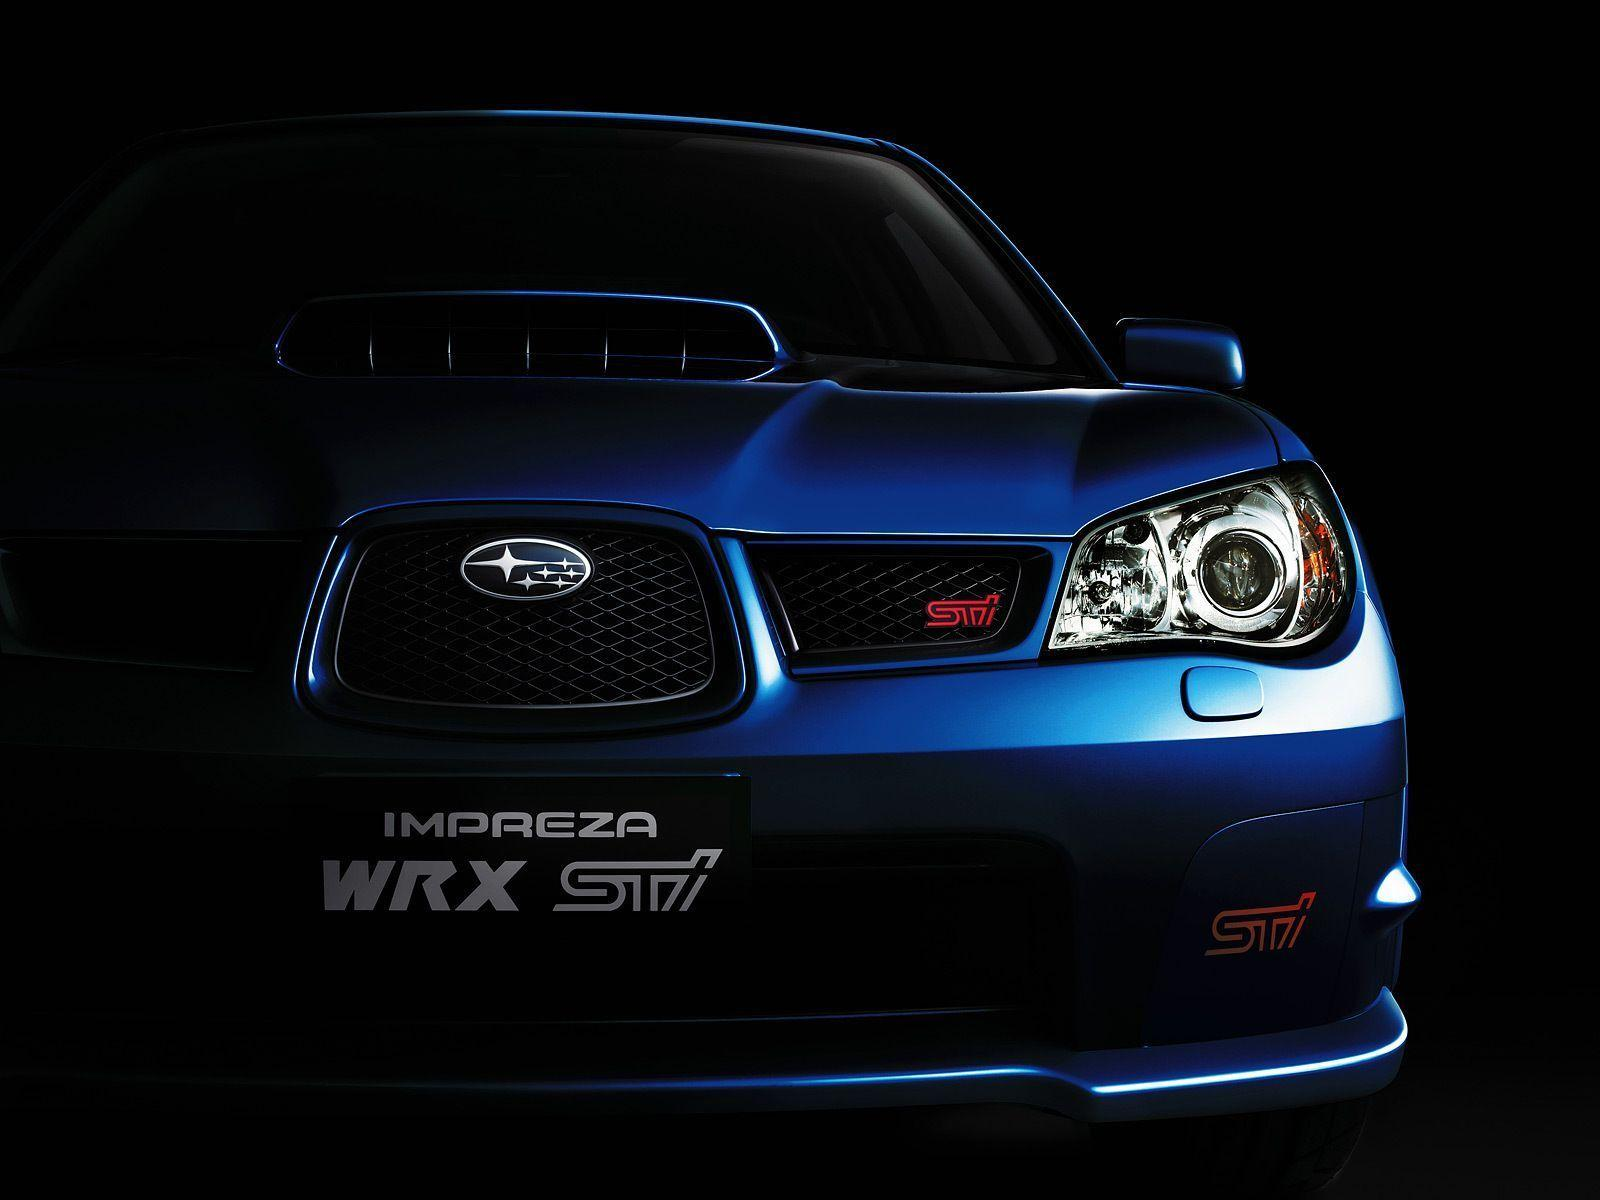 Subaru Impreza WRX STI 2006 Wallpapers - HD Wallpapers 55799